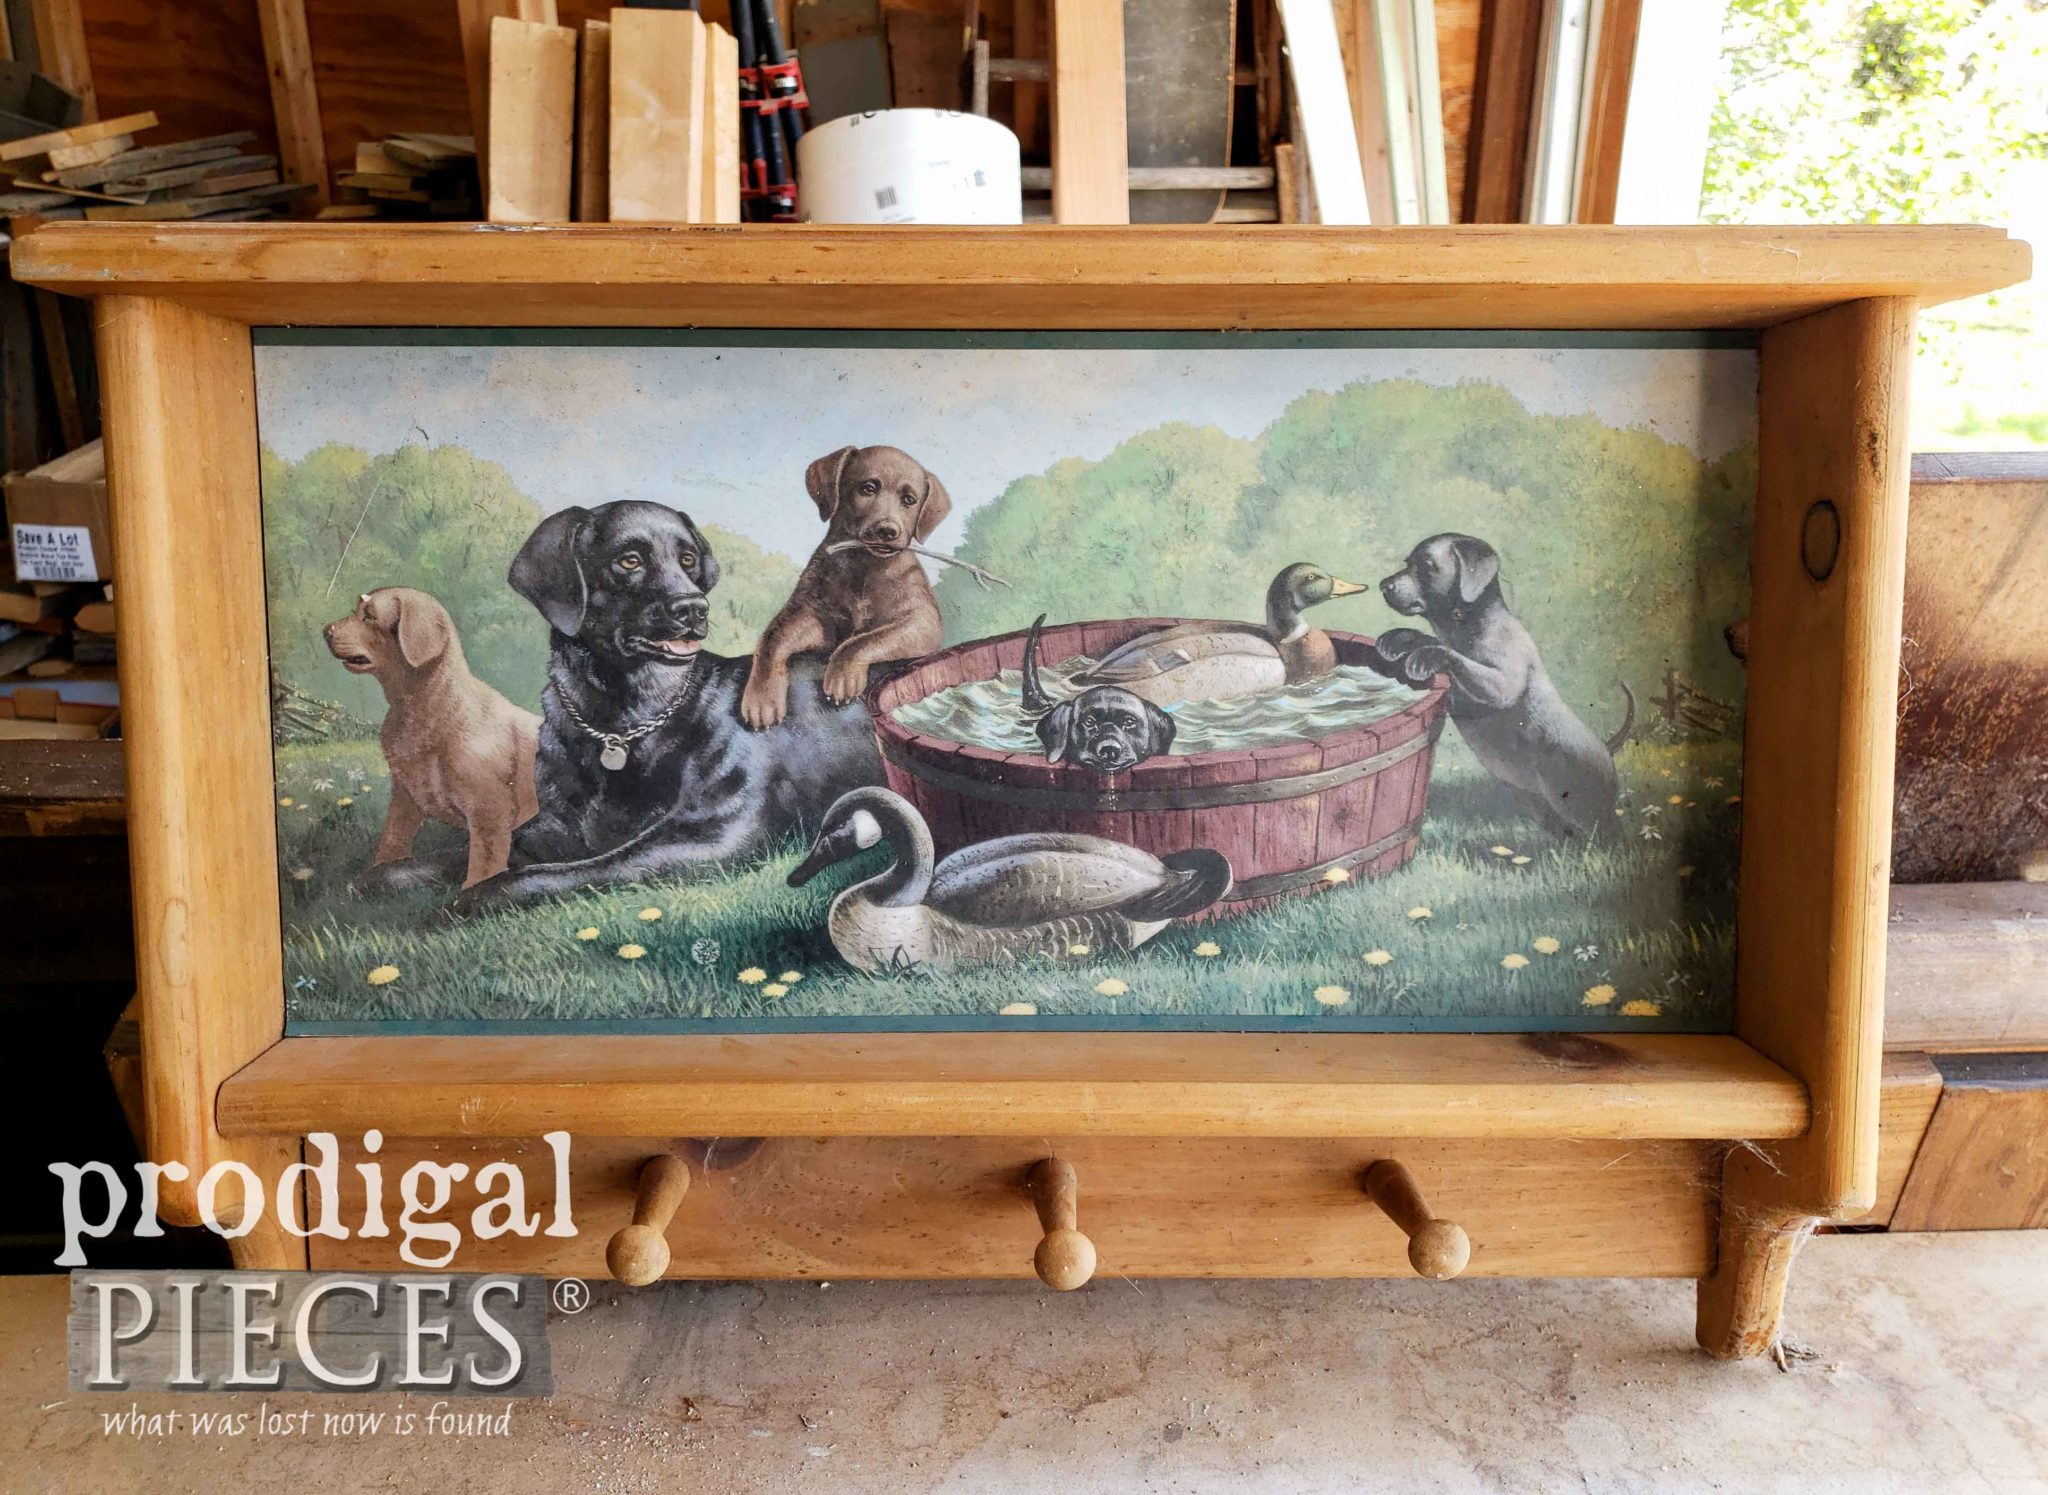 1980's Hunting Scene Shelf Before Makeover by Prodigal Pieces | prodigalpieces.com